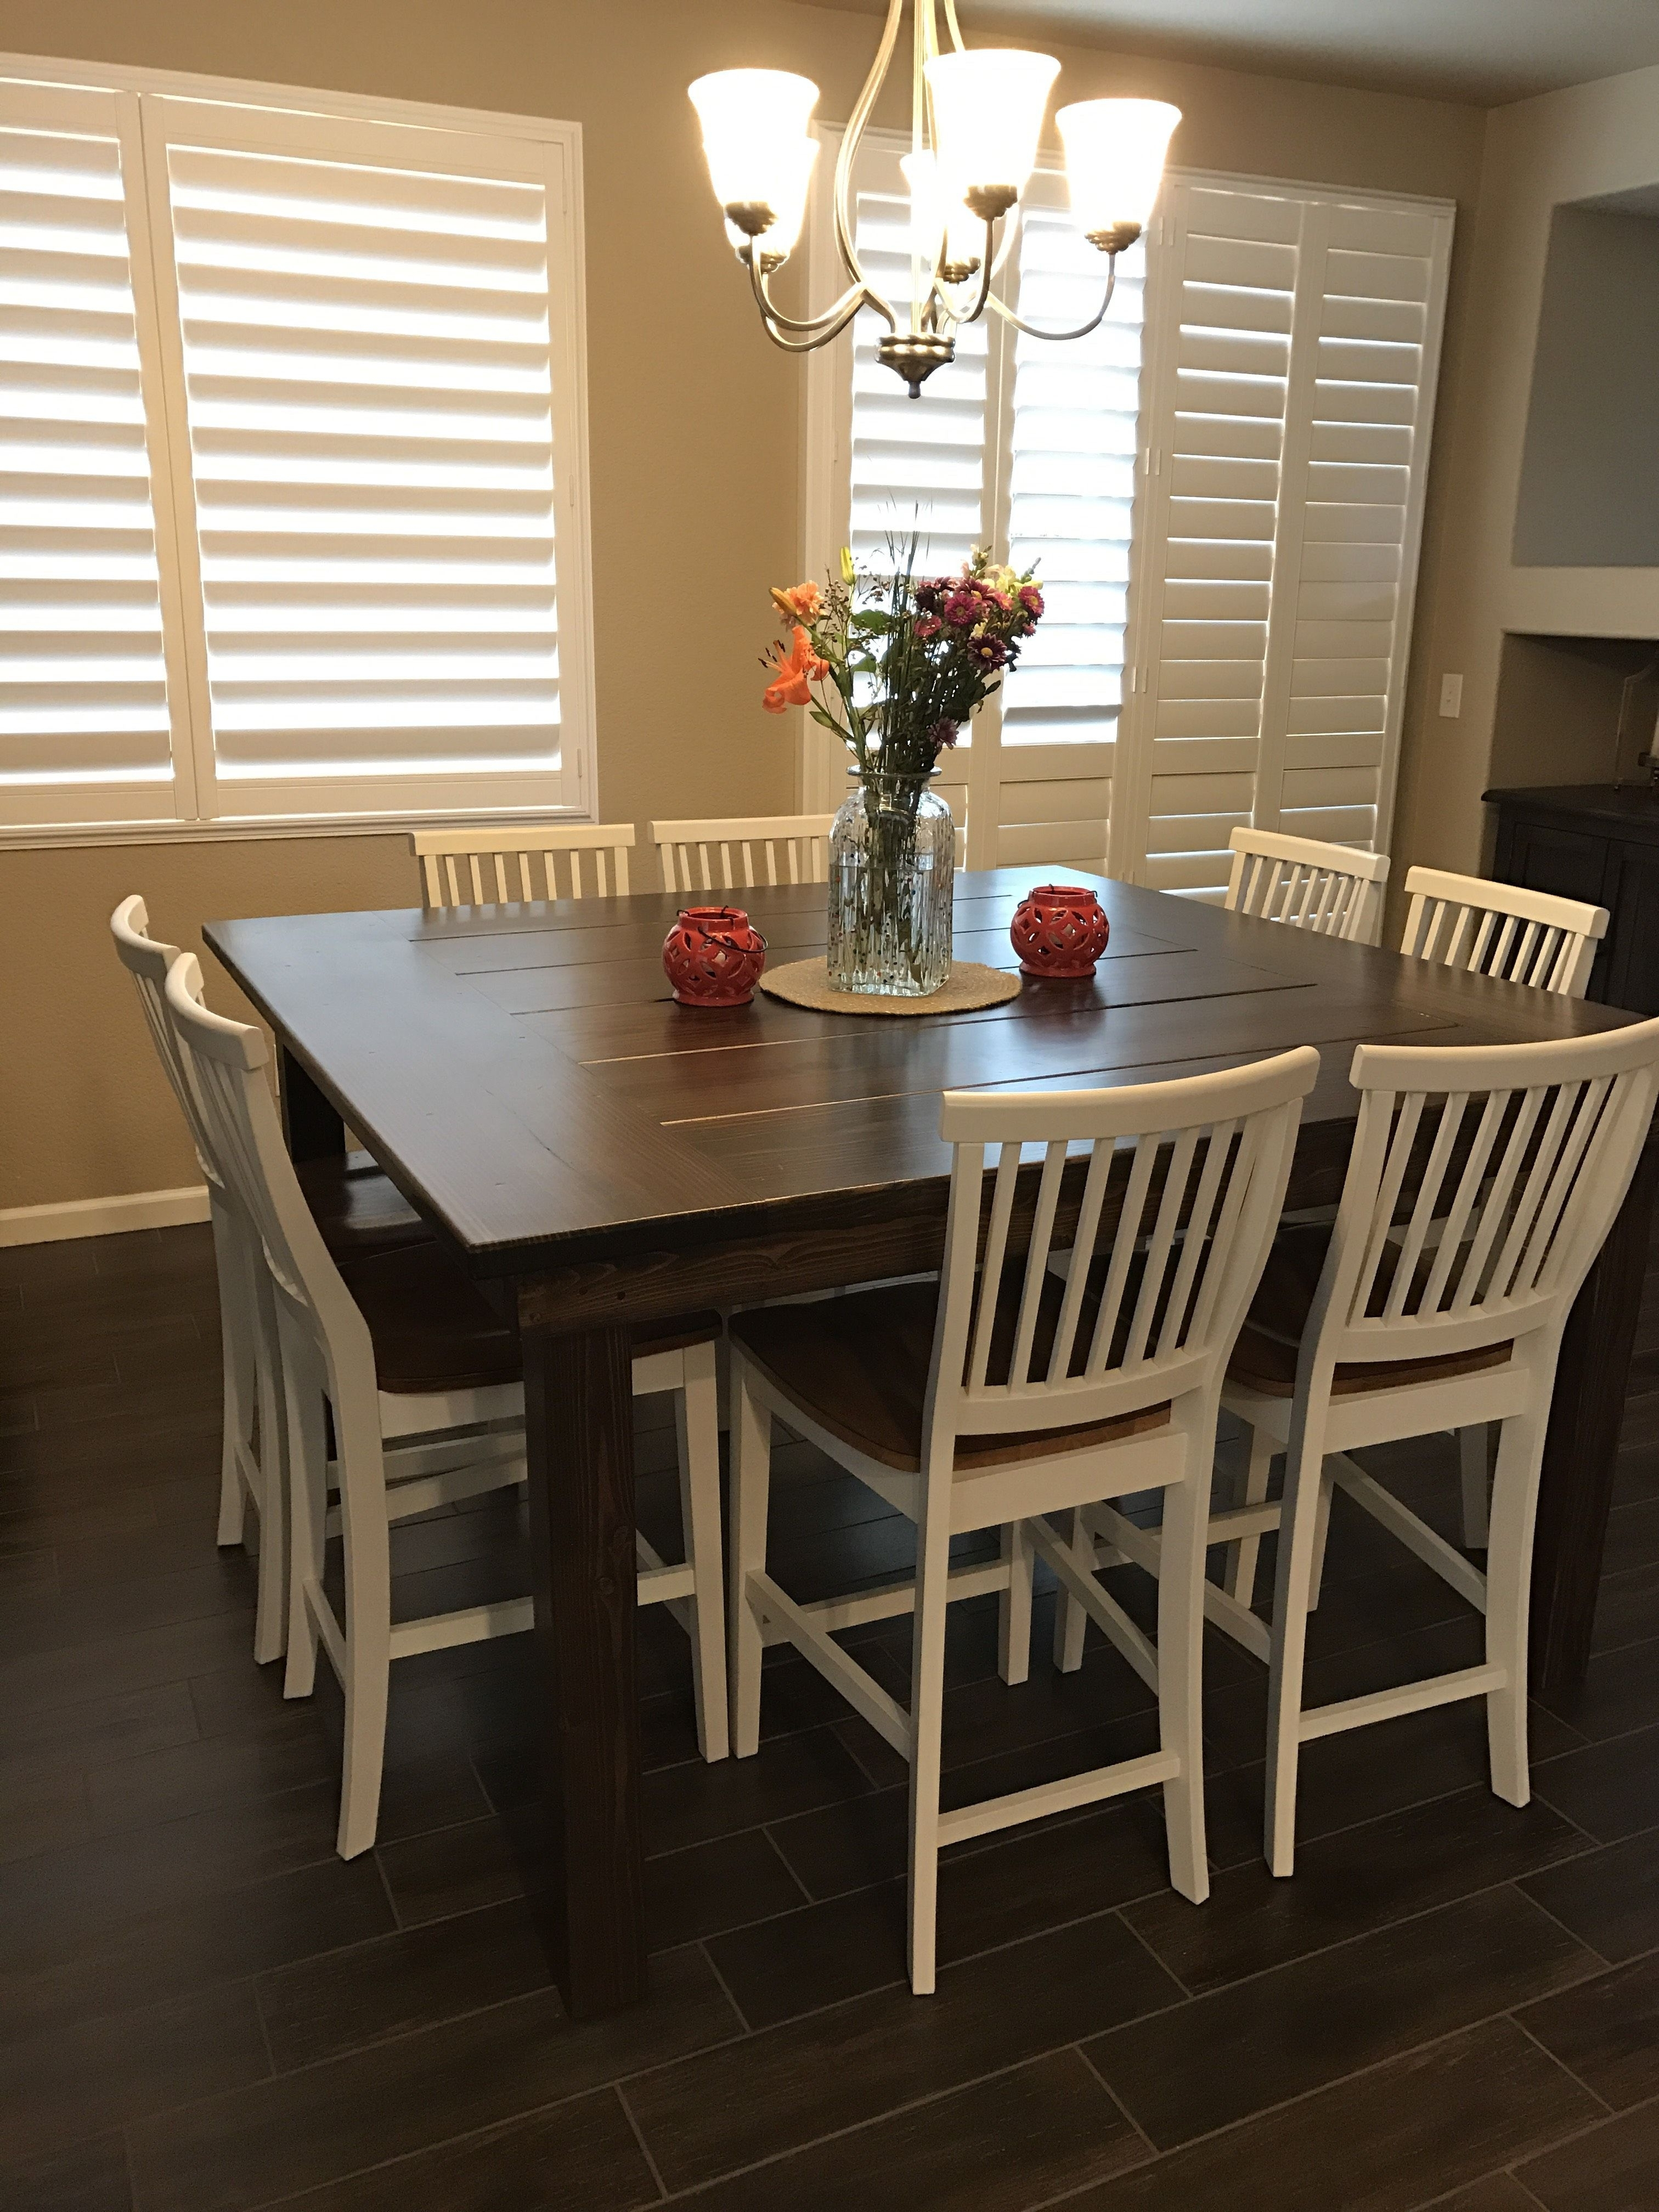 "The James+James 66"" X 66"" X 36"" Square Farmhouse Dining Table In Within Best And Newest Farm Dining Tables (View 10 of 25)"